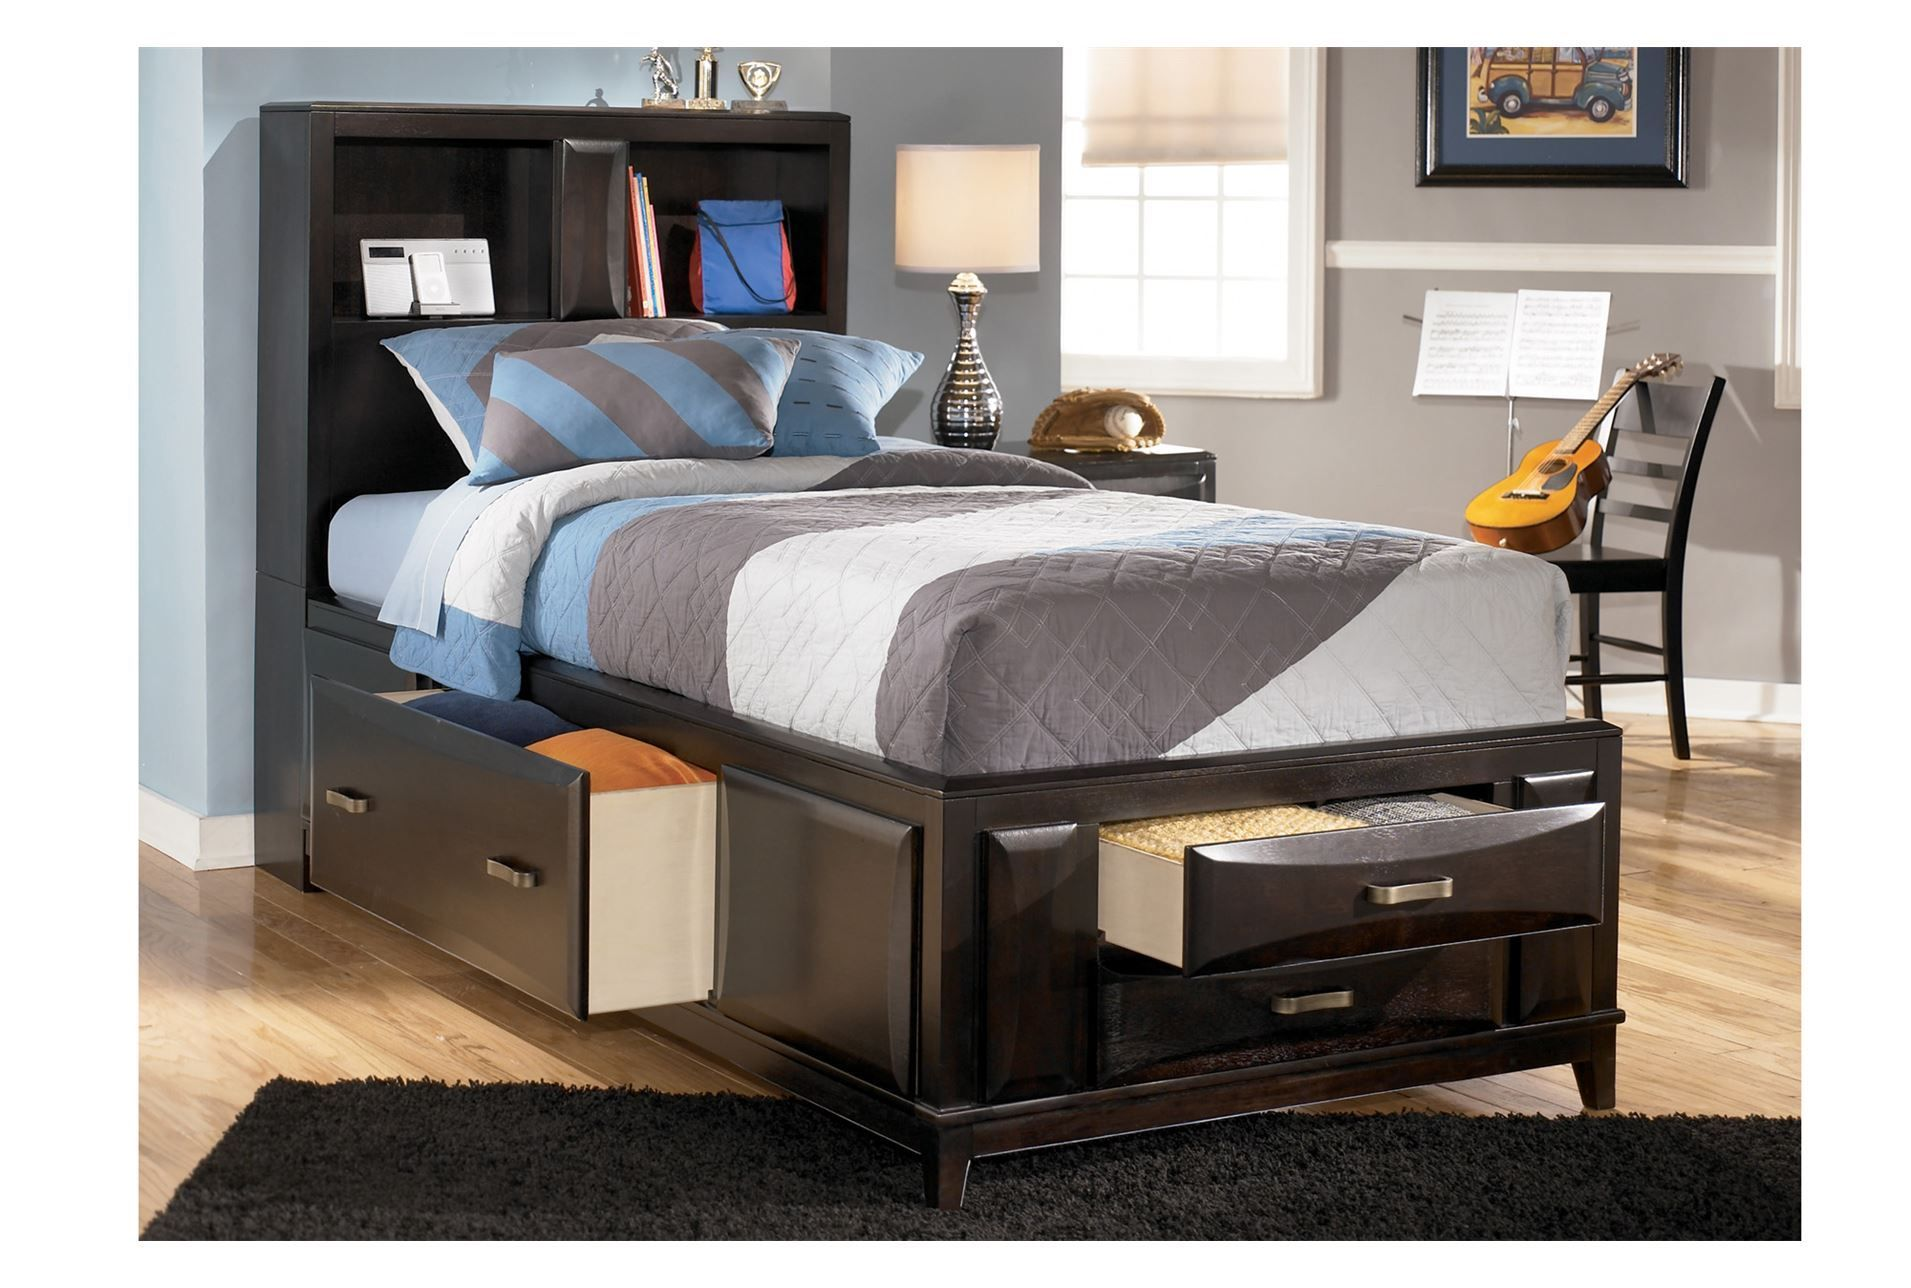 Double Bed For Kaden With Trundle Ashley Furniture Panel Bed